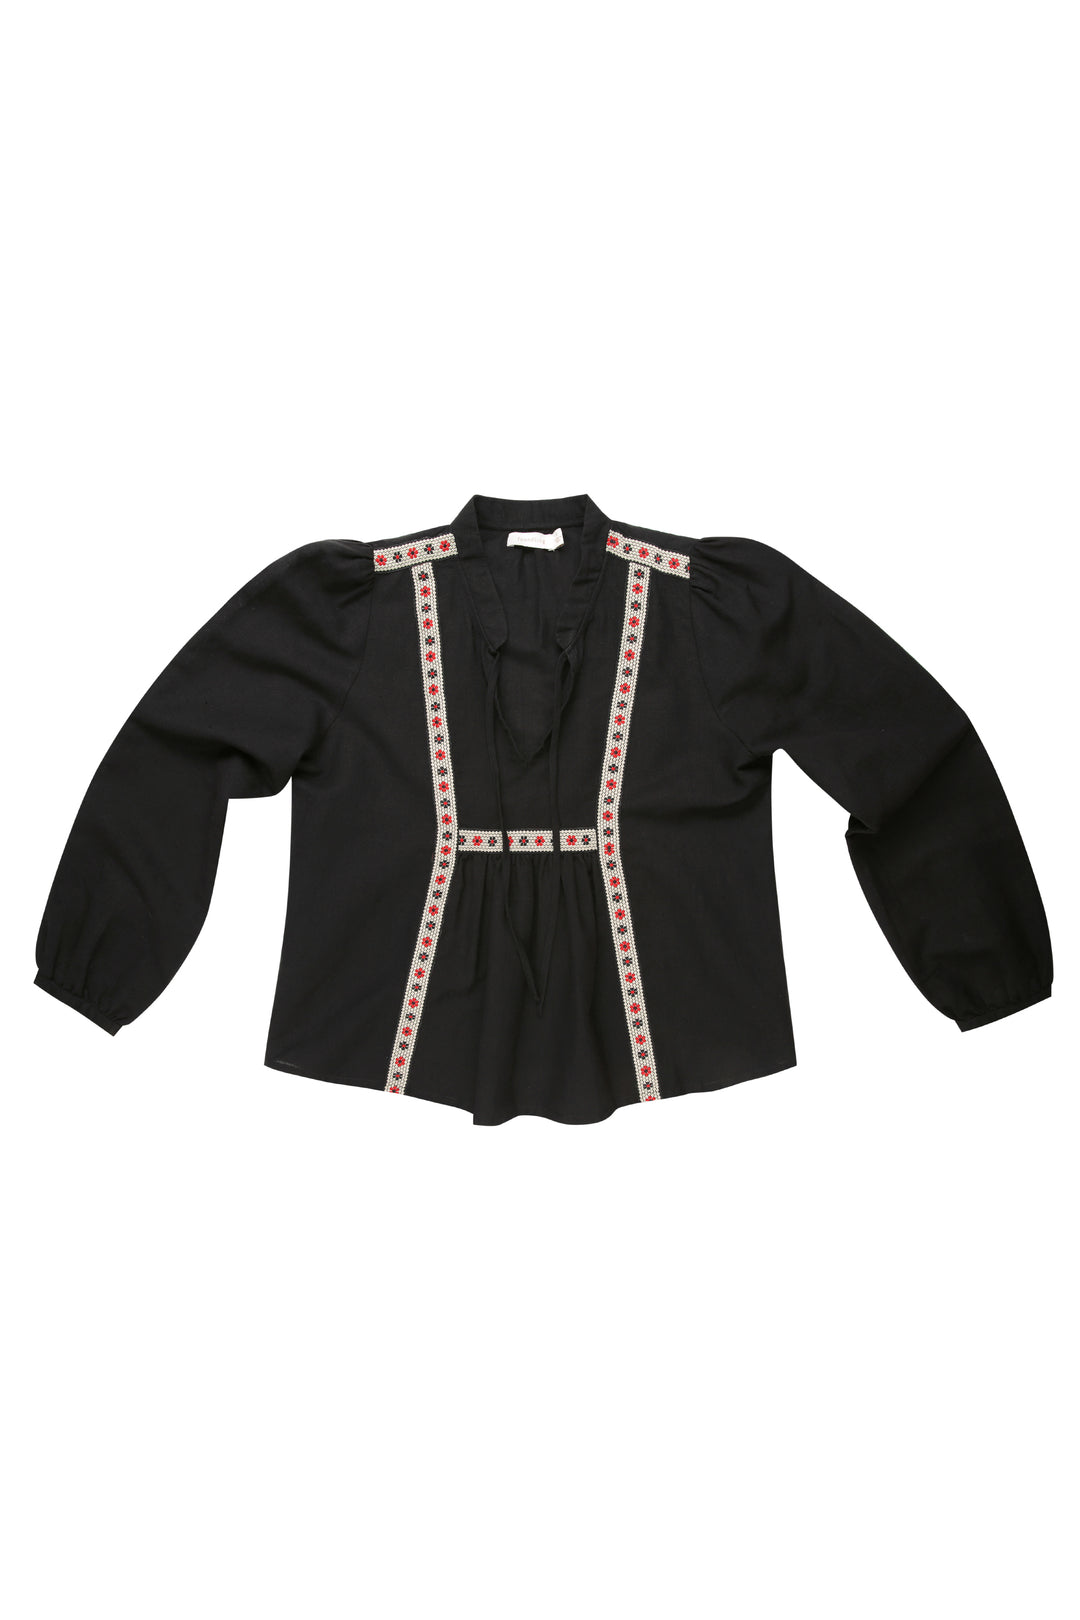 final sale: Prairie Ribbon Blouse Nelly